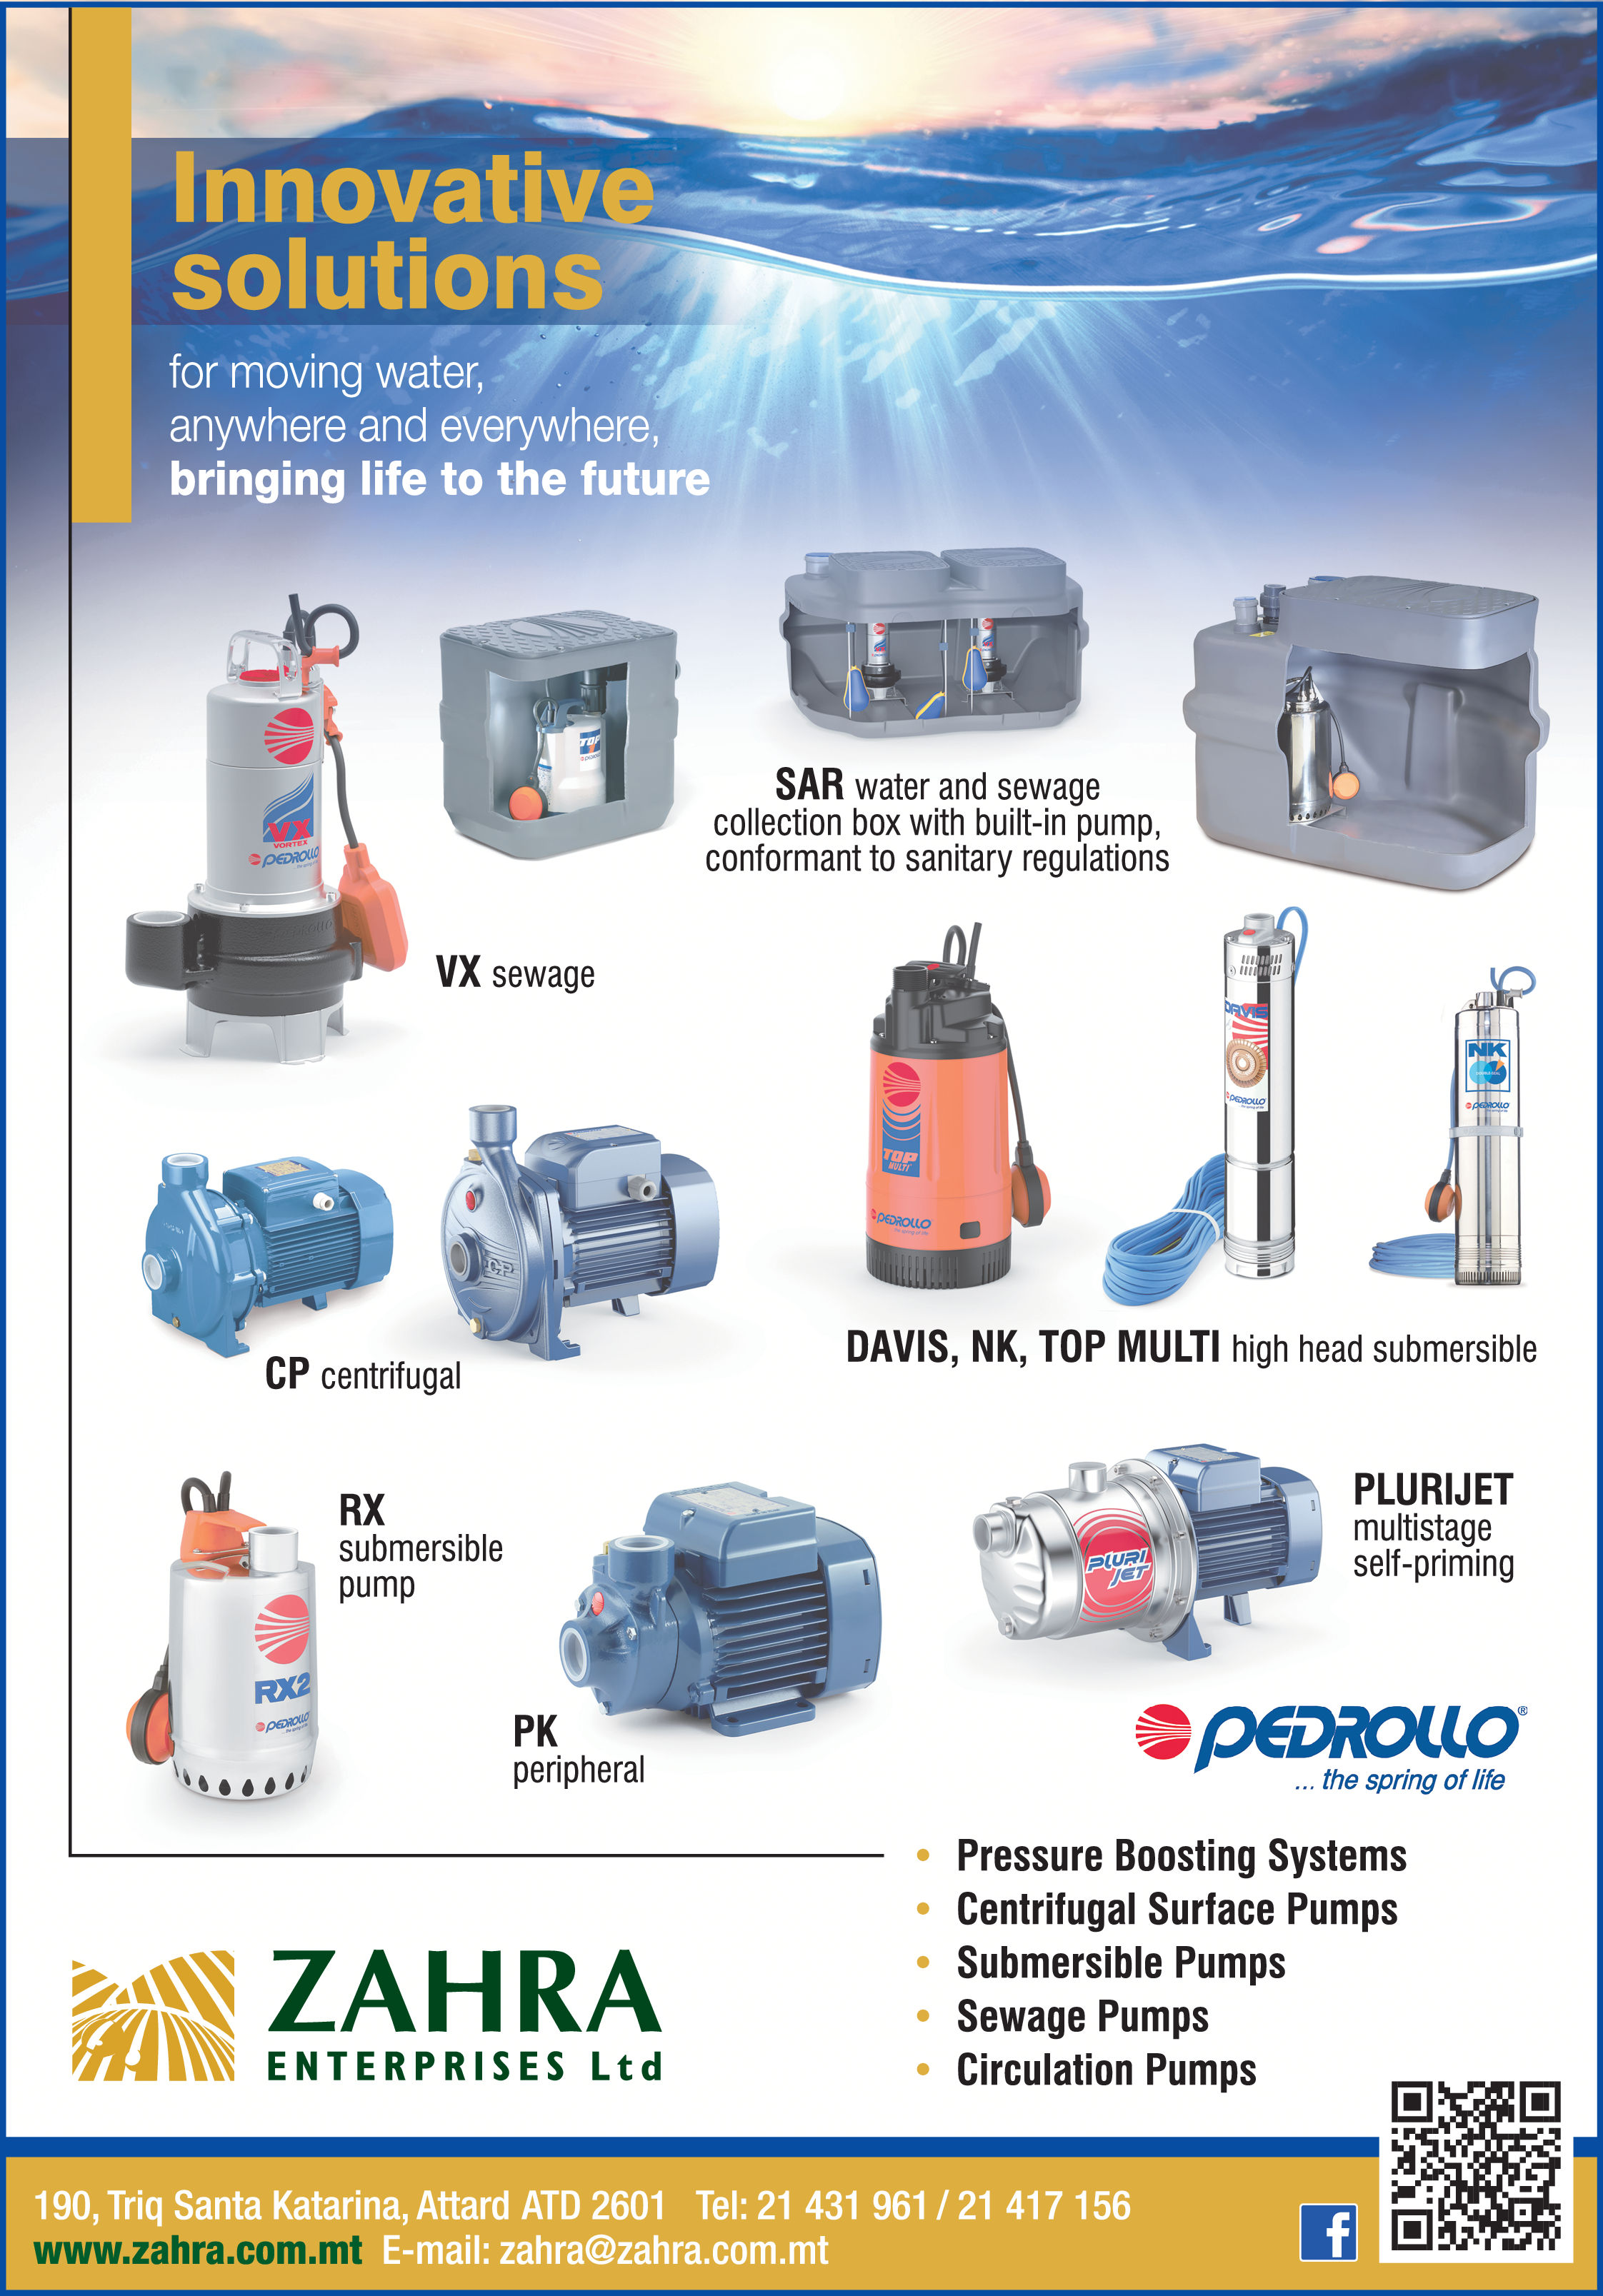 Pedrollo - Zahra Enterprises Ltd - Pumps